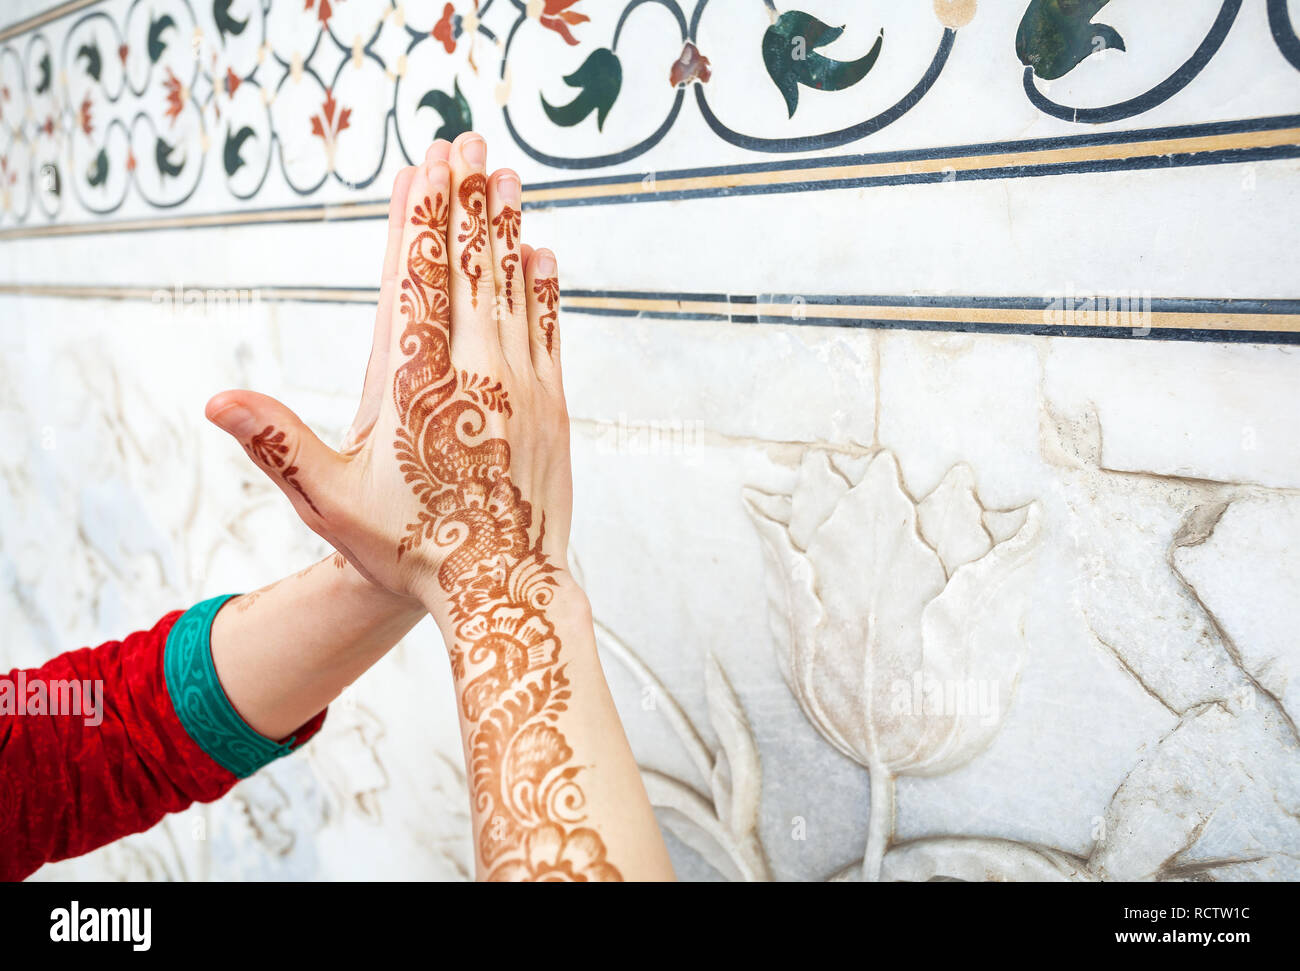 Woman in red Indian costume ding Namaste gesture by hand in henna paintings  near the marble wall with floral pattern in Taj Mahal in Agra, Uttar Prad - Stock Image